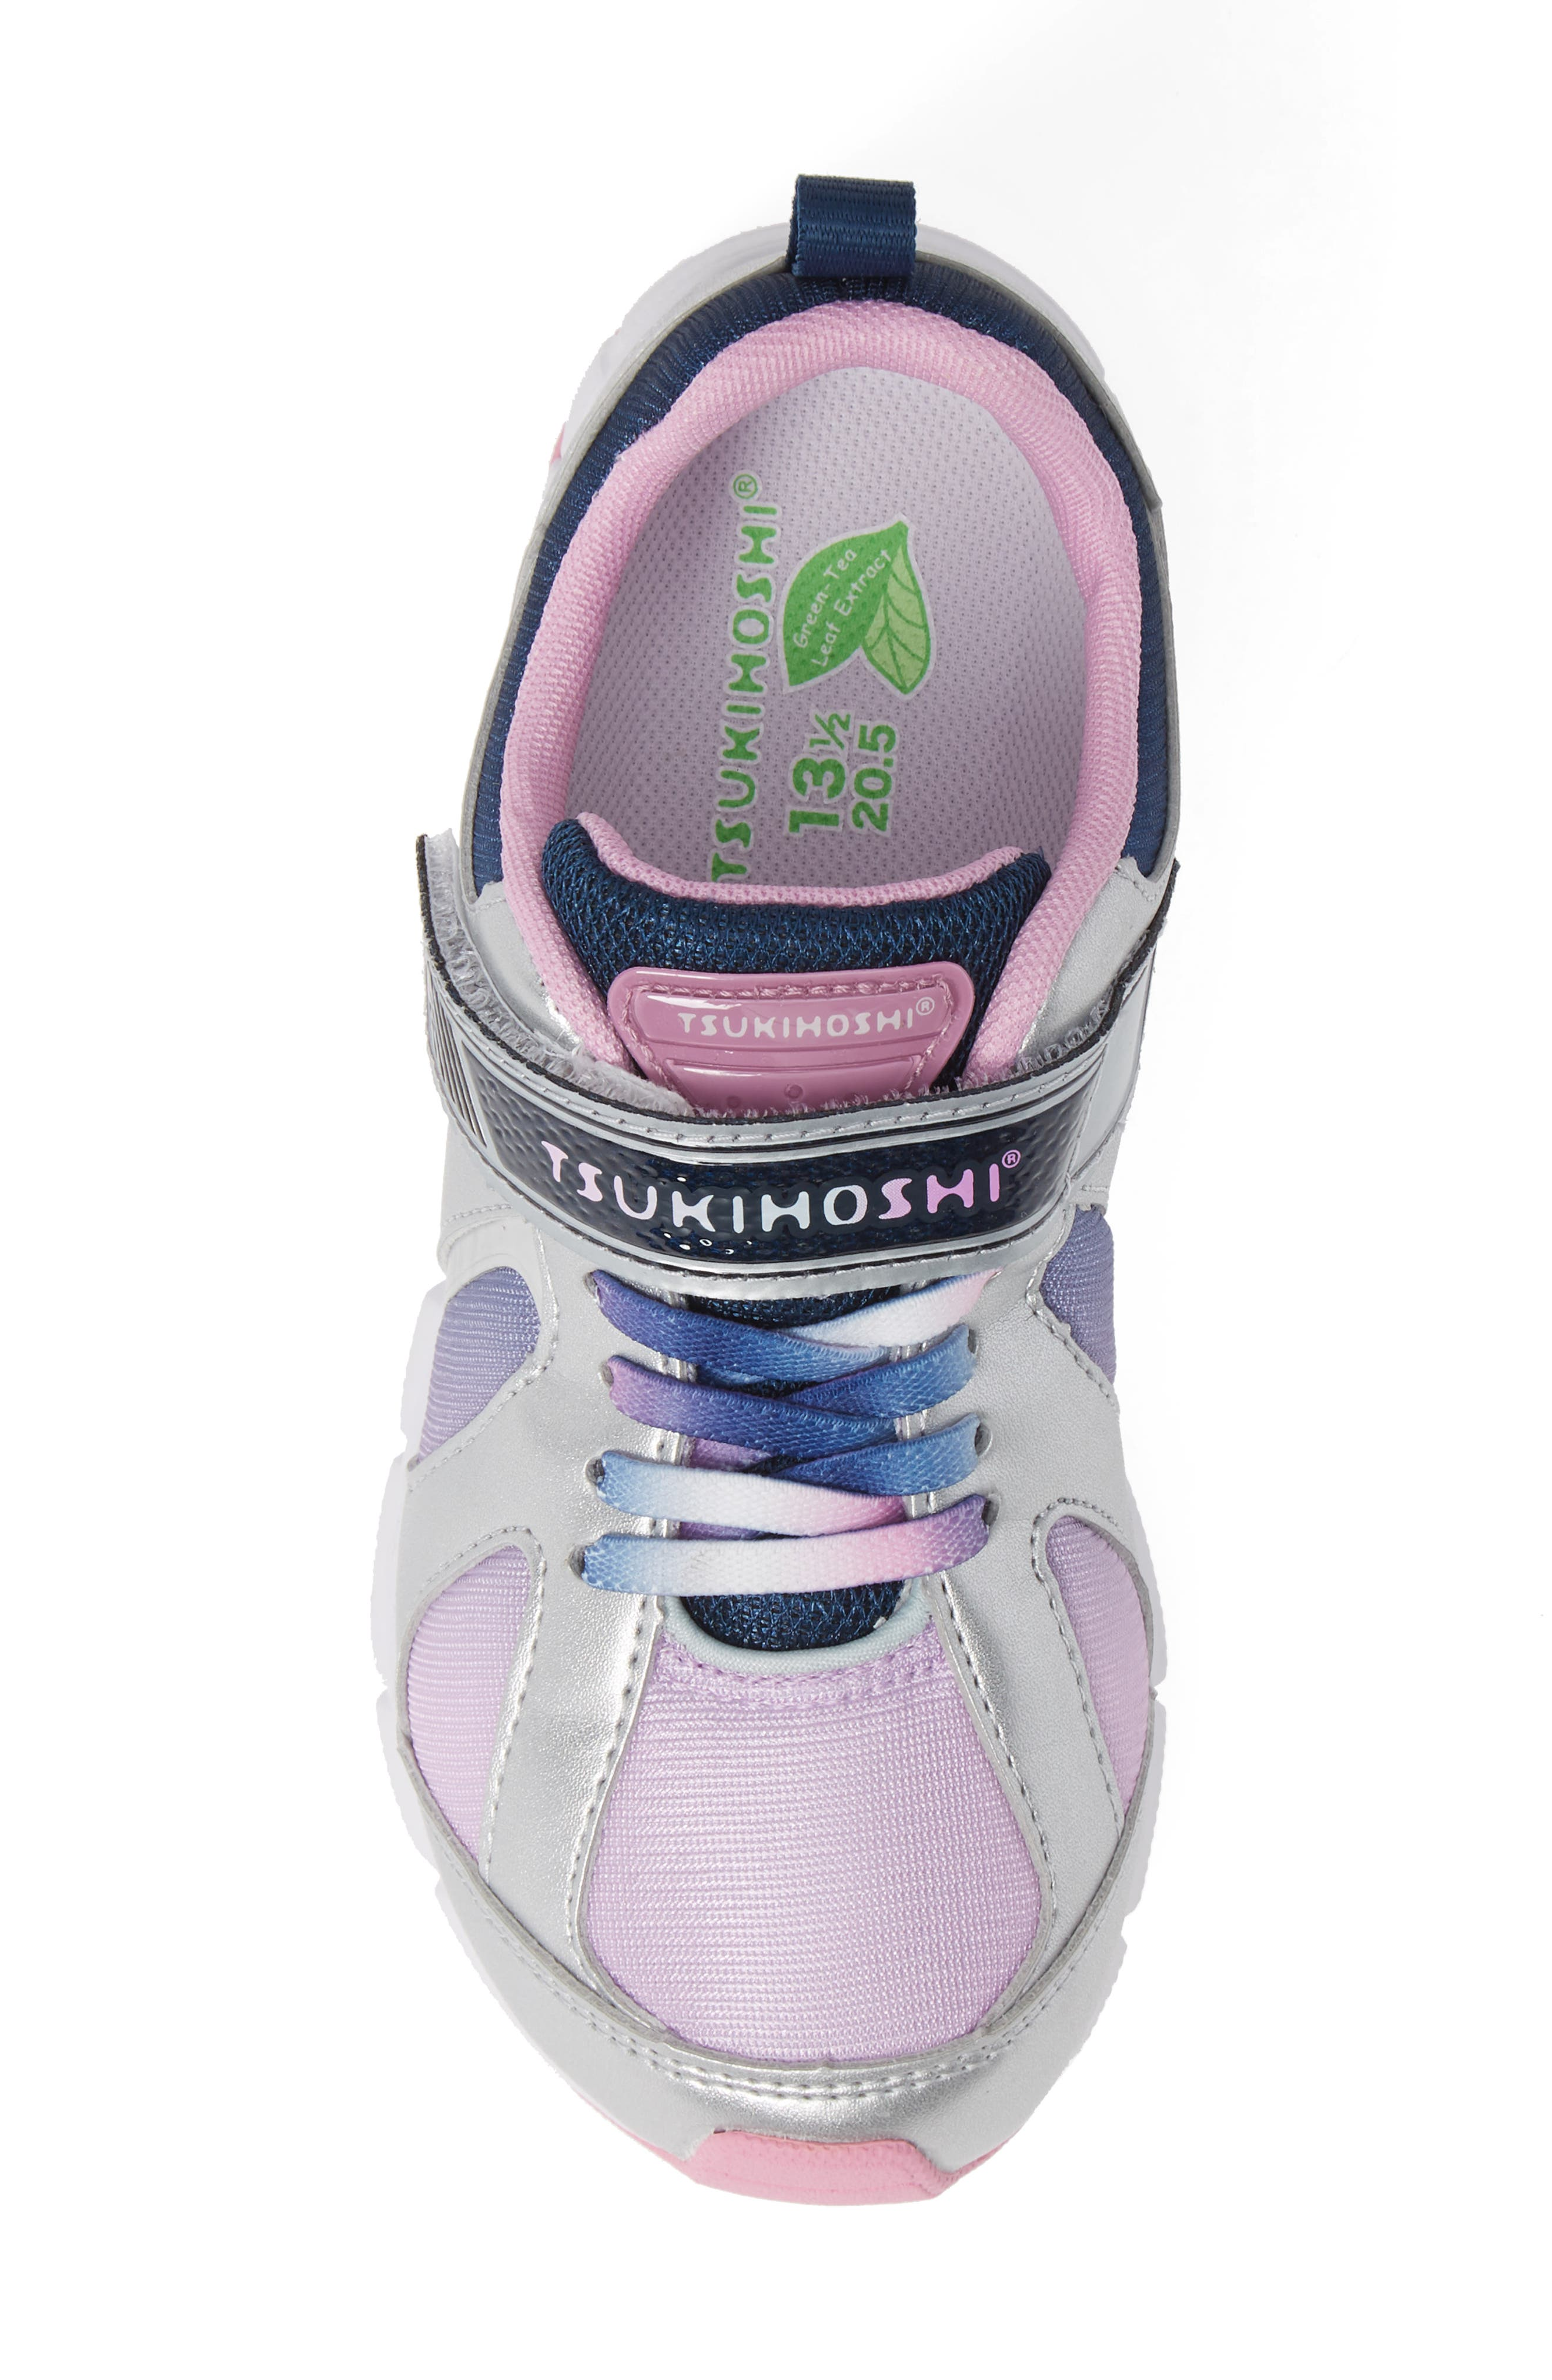 Rainbow Washable Sneaker,                             Alternate thumbnail 5, color,                             SILVER/ NAVY